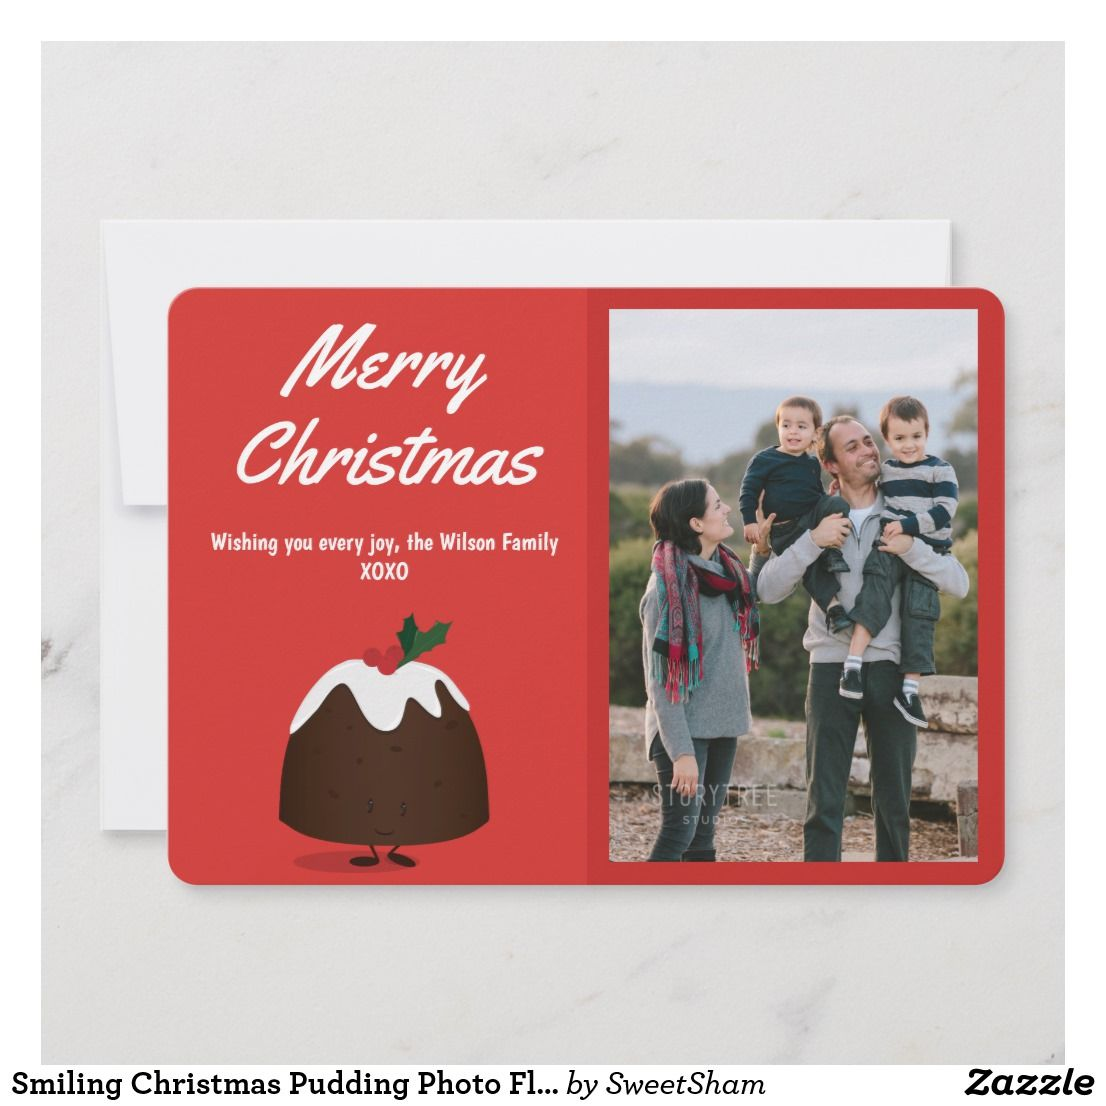 Smiling Christmas Pudding Photo Flat Holiday Card Zazzle Com Holiday Design Card Merry Christmas Wishes Holiday Cards